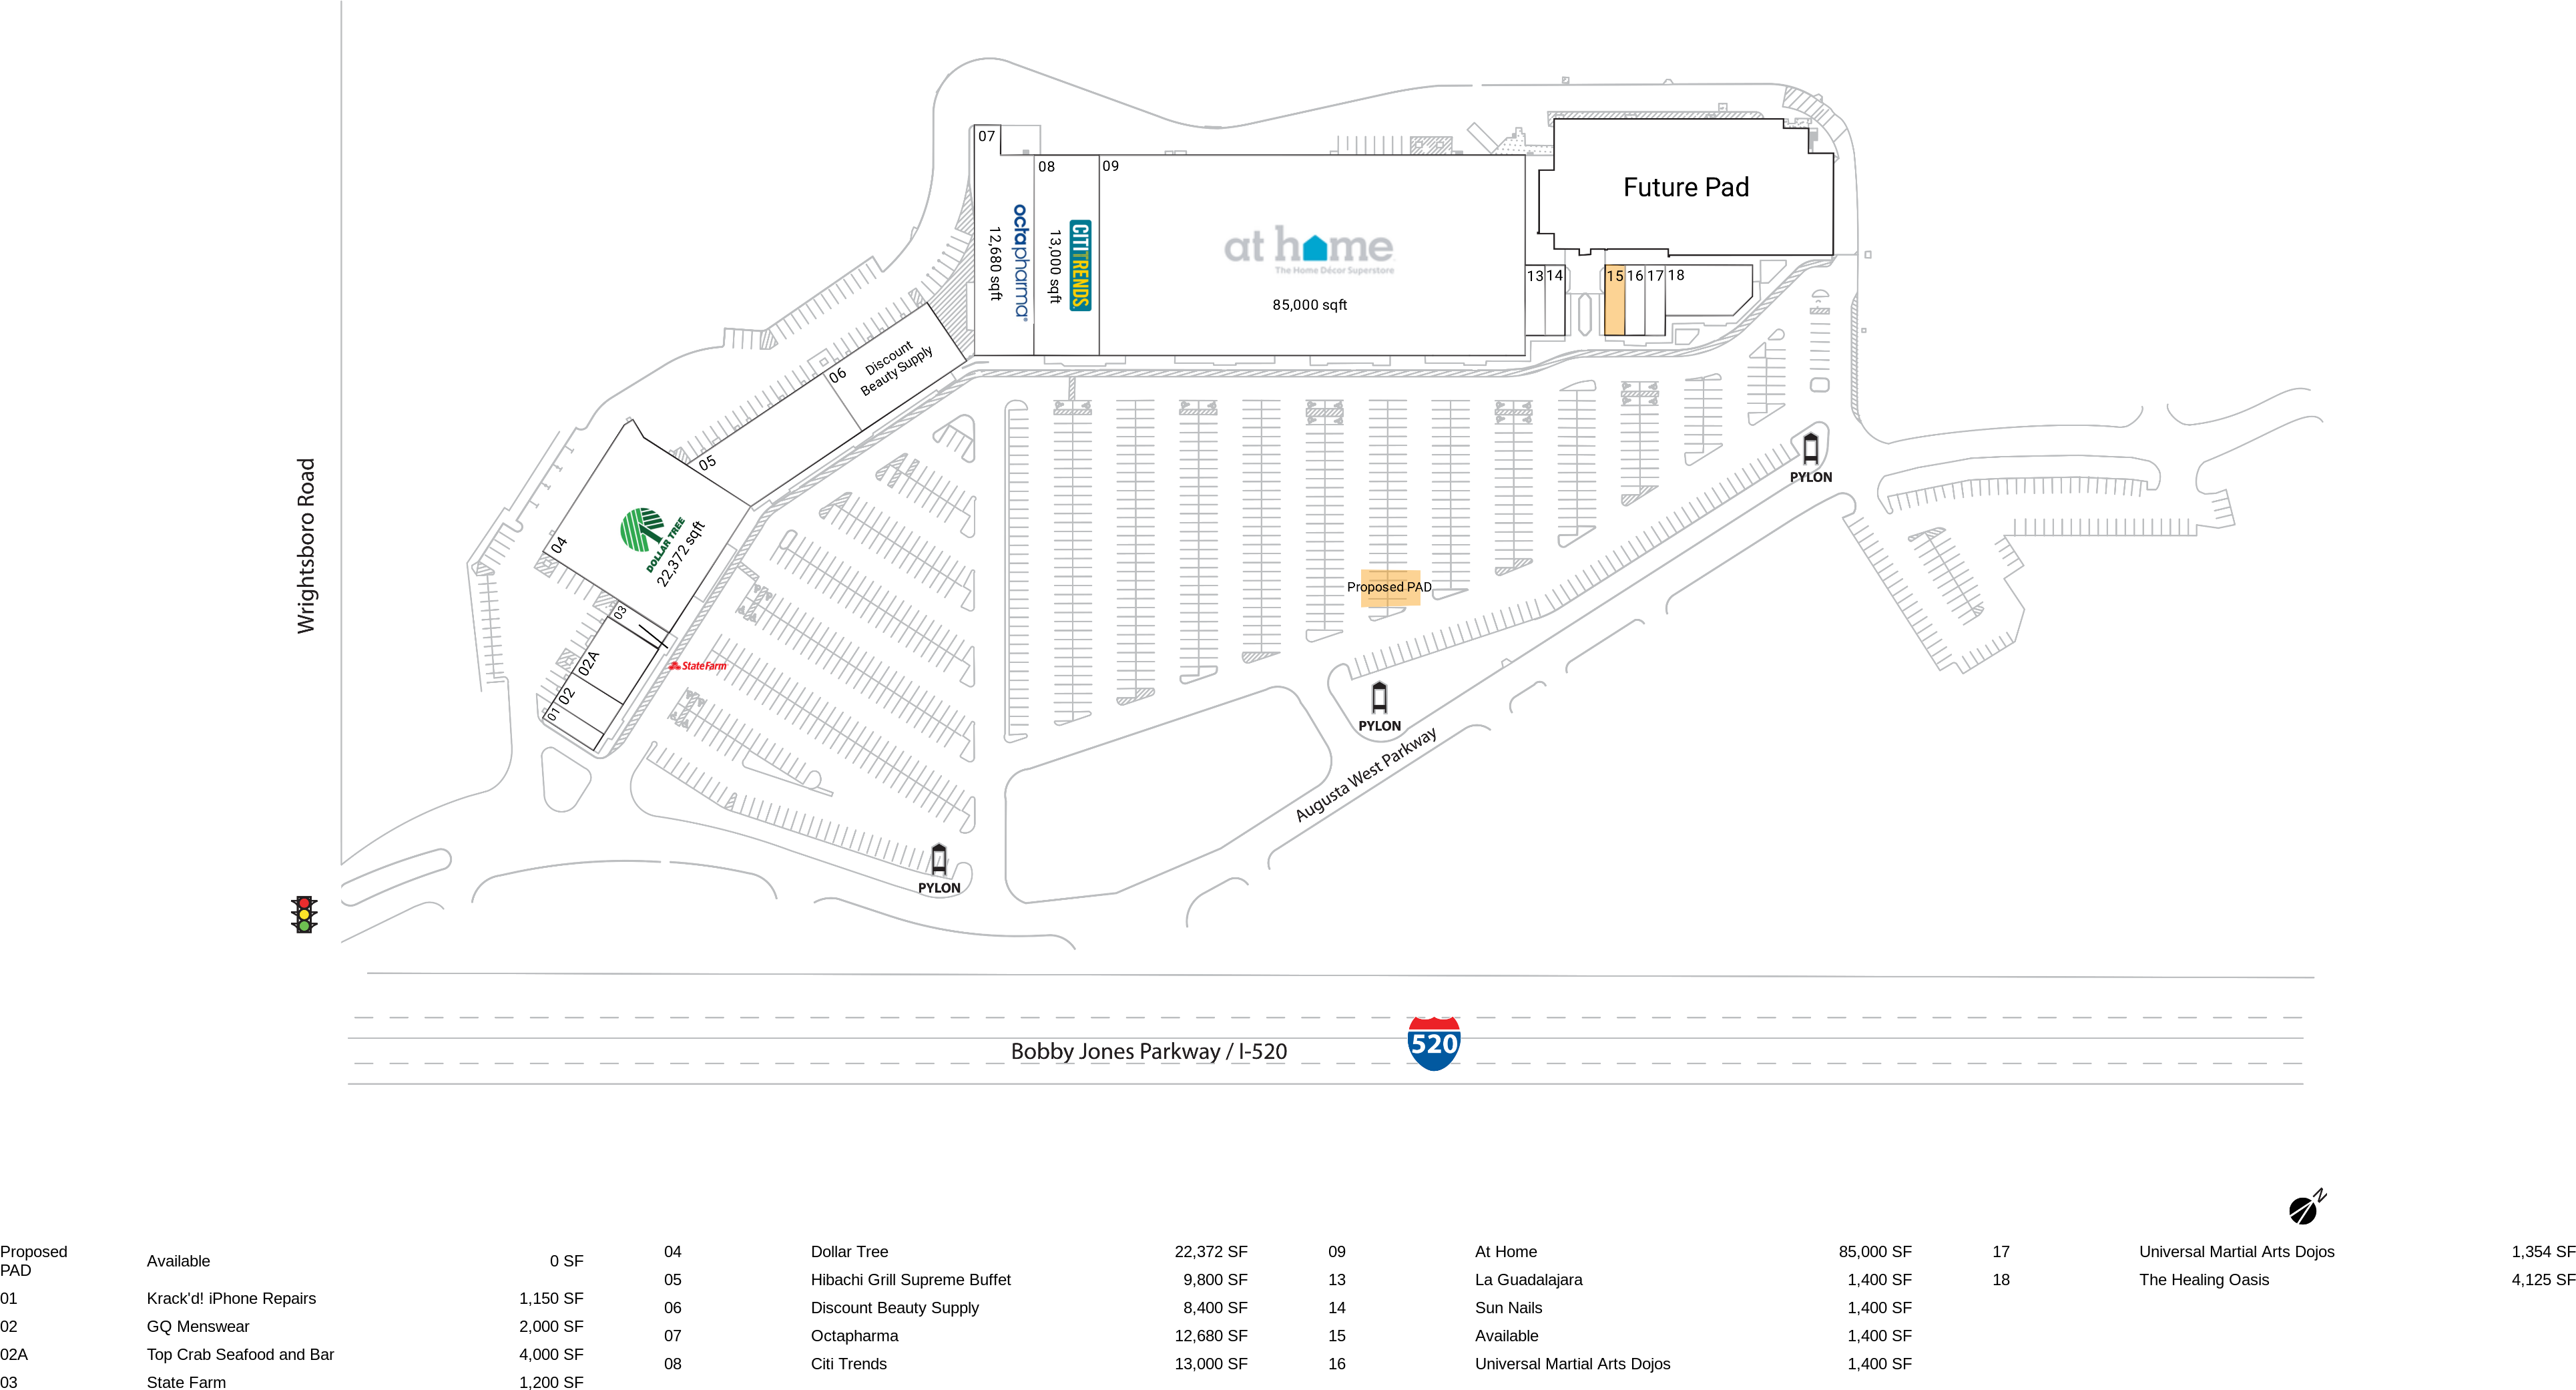 quail springs mall map woodland hills mall map woodland hills rentalsdecatur ga. quail springs mall map amc quail springs mall  prices photos